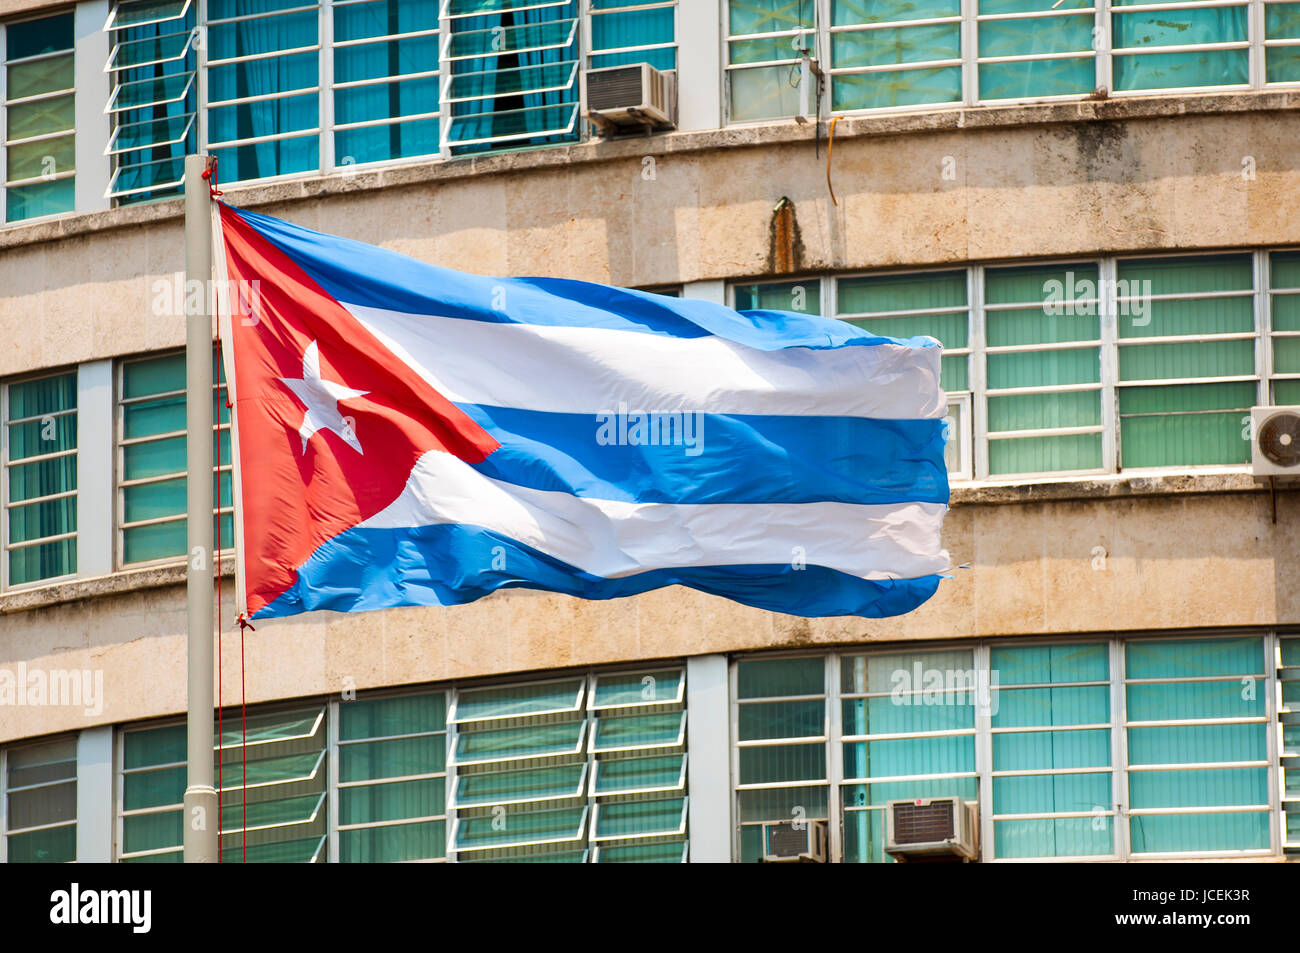 Cuban flag flying from a flagpole in the wind in front ministerial building at Revolution Plaza in Havana, Cuba - Stock Image